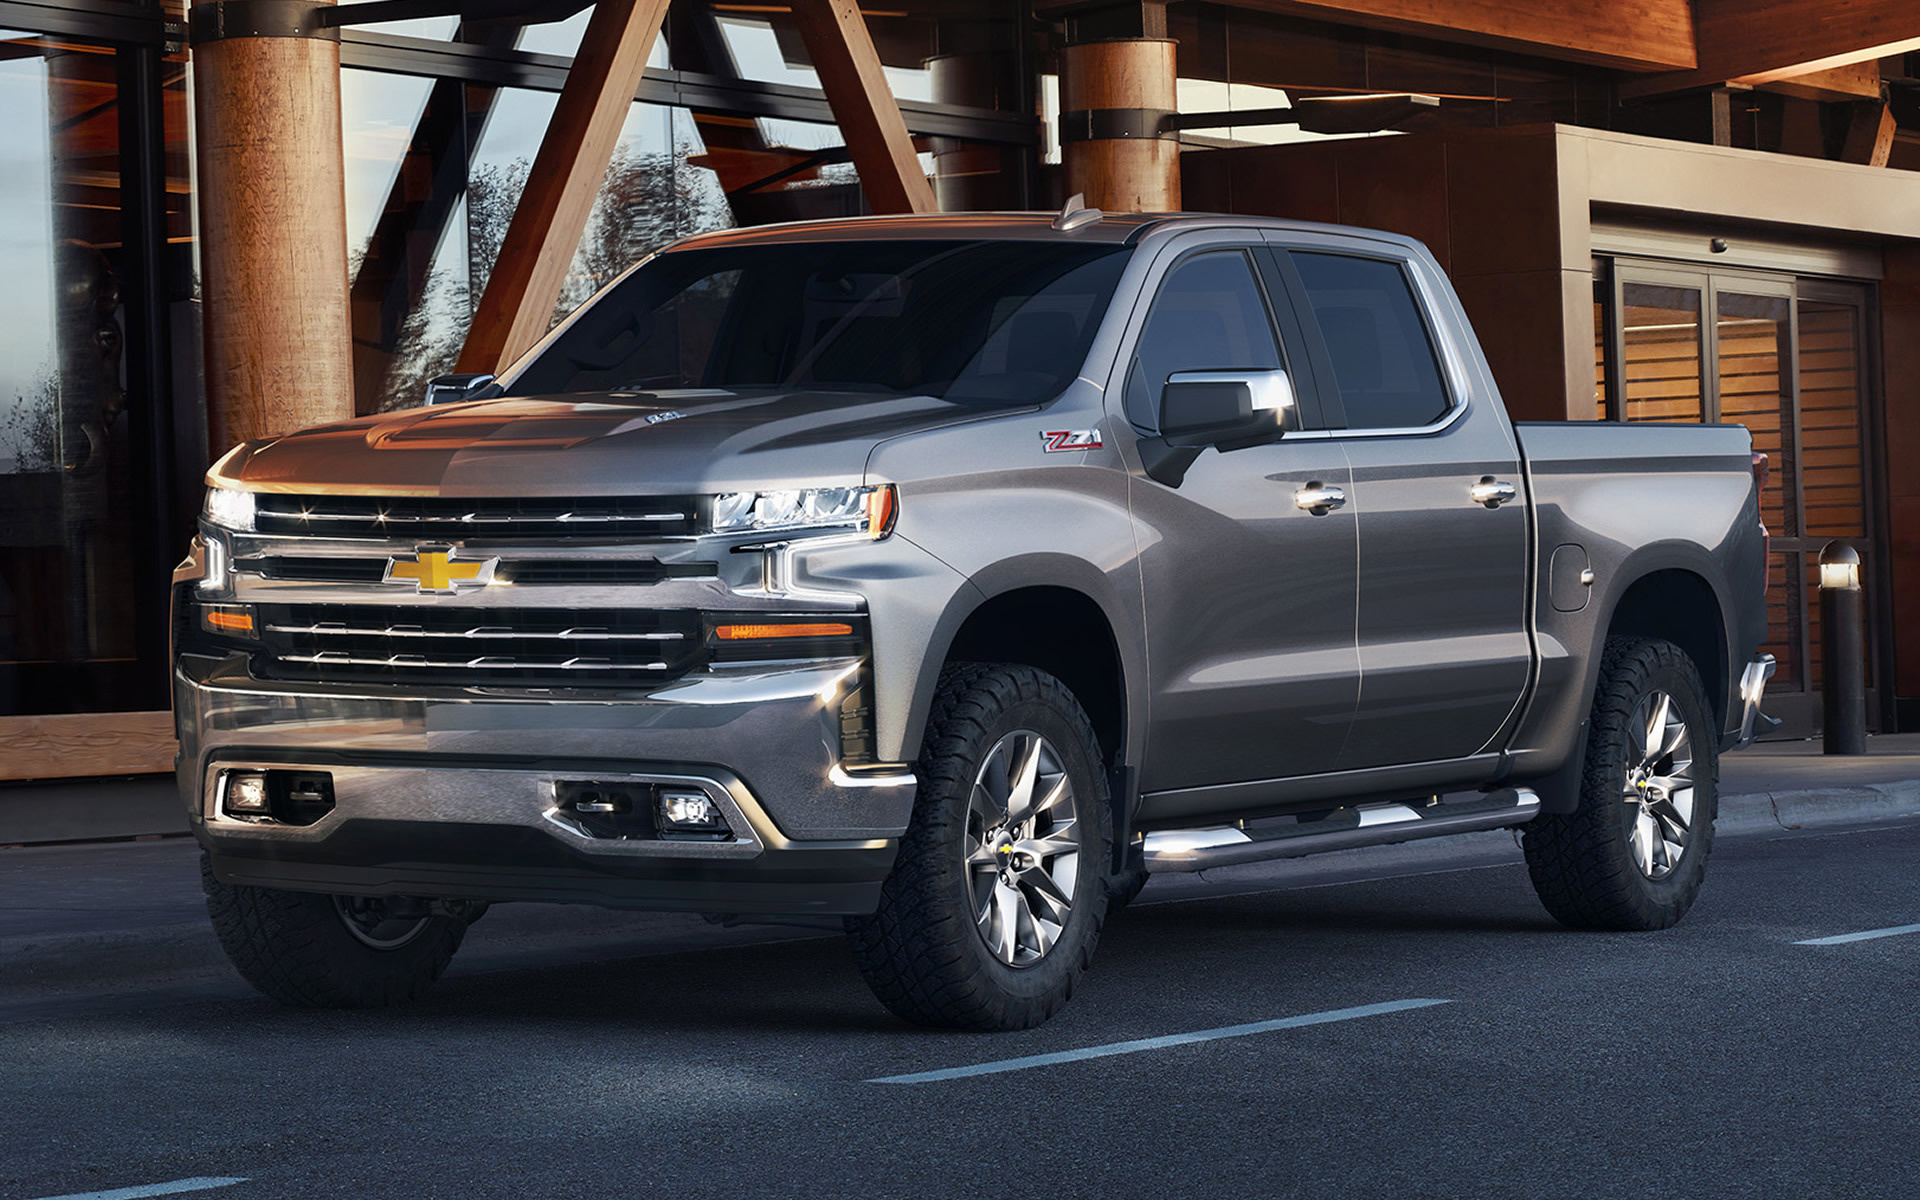 2019 chevrolet silverado z71 crew cab wallpapers and hd. Black Bedroom Furniture Sets. Home Design Ideas